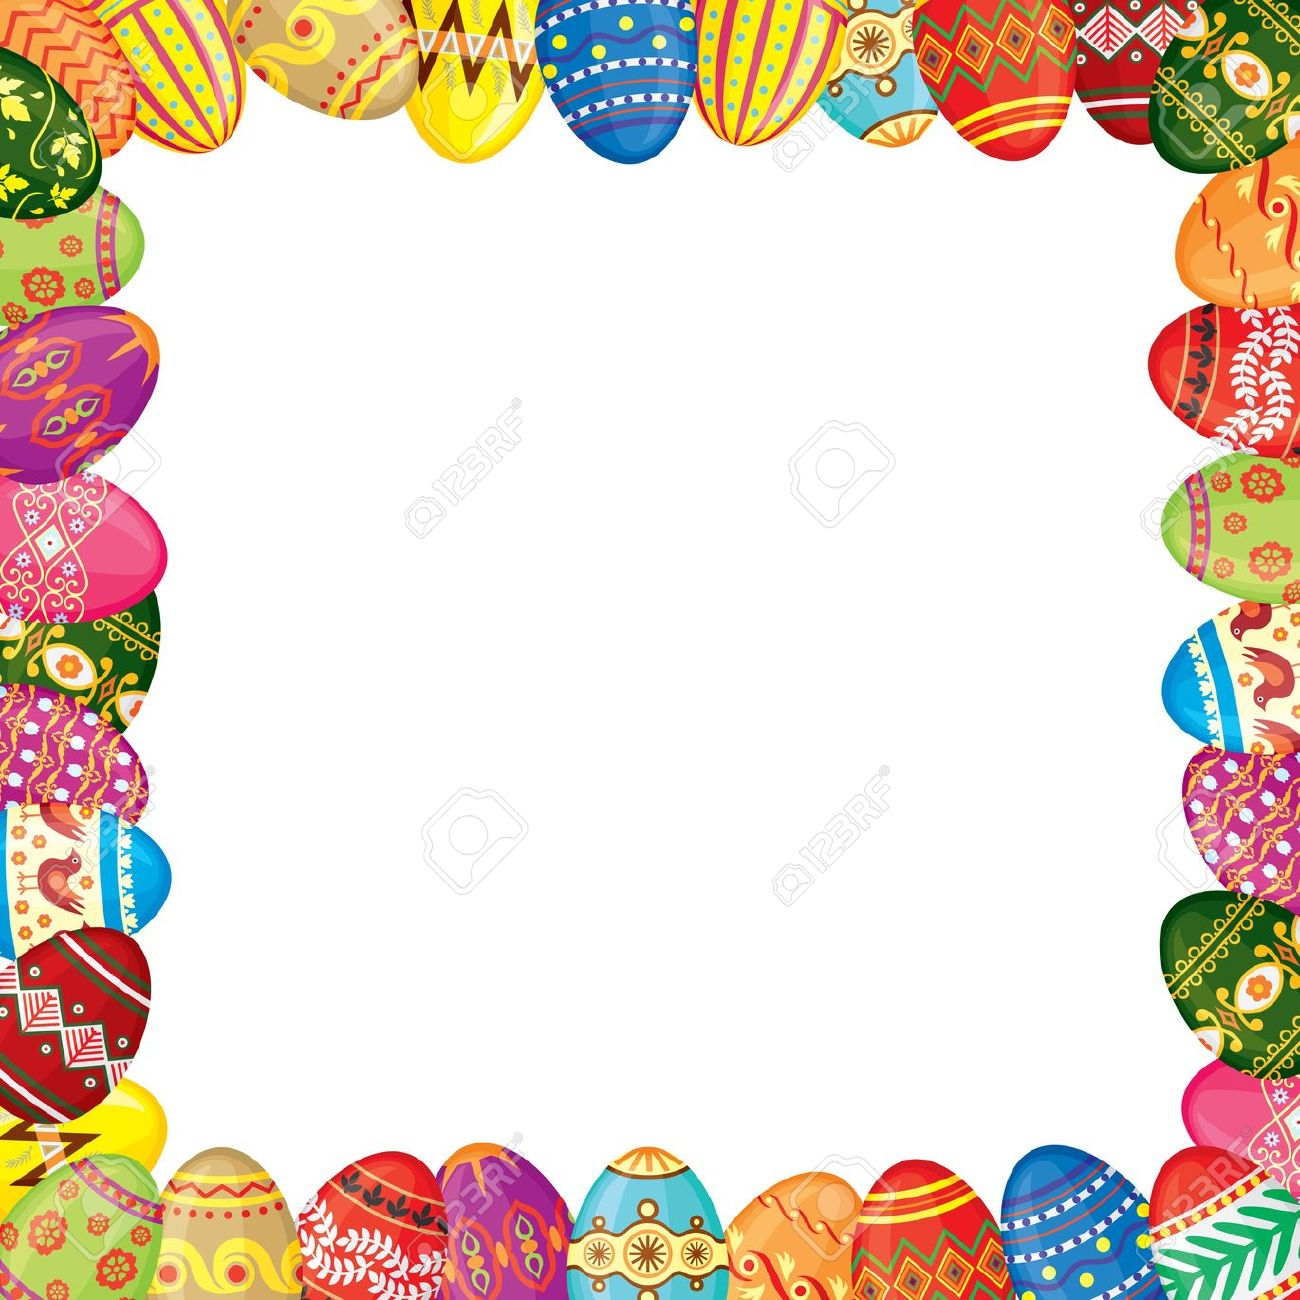 Easter Border   Free download on ClipArtMag (1300 x 1300 Pixel)